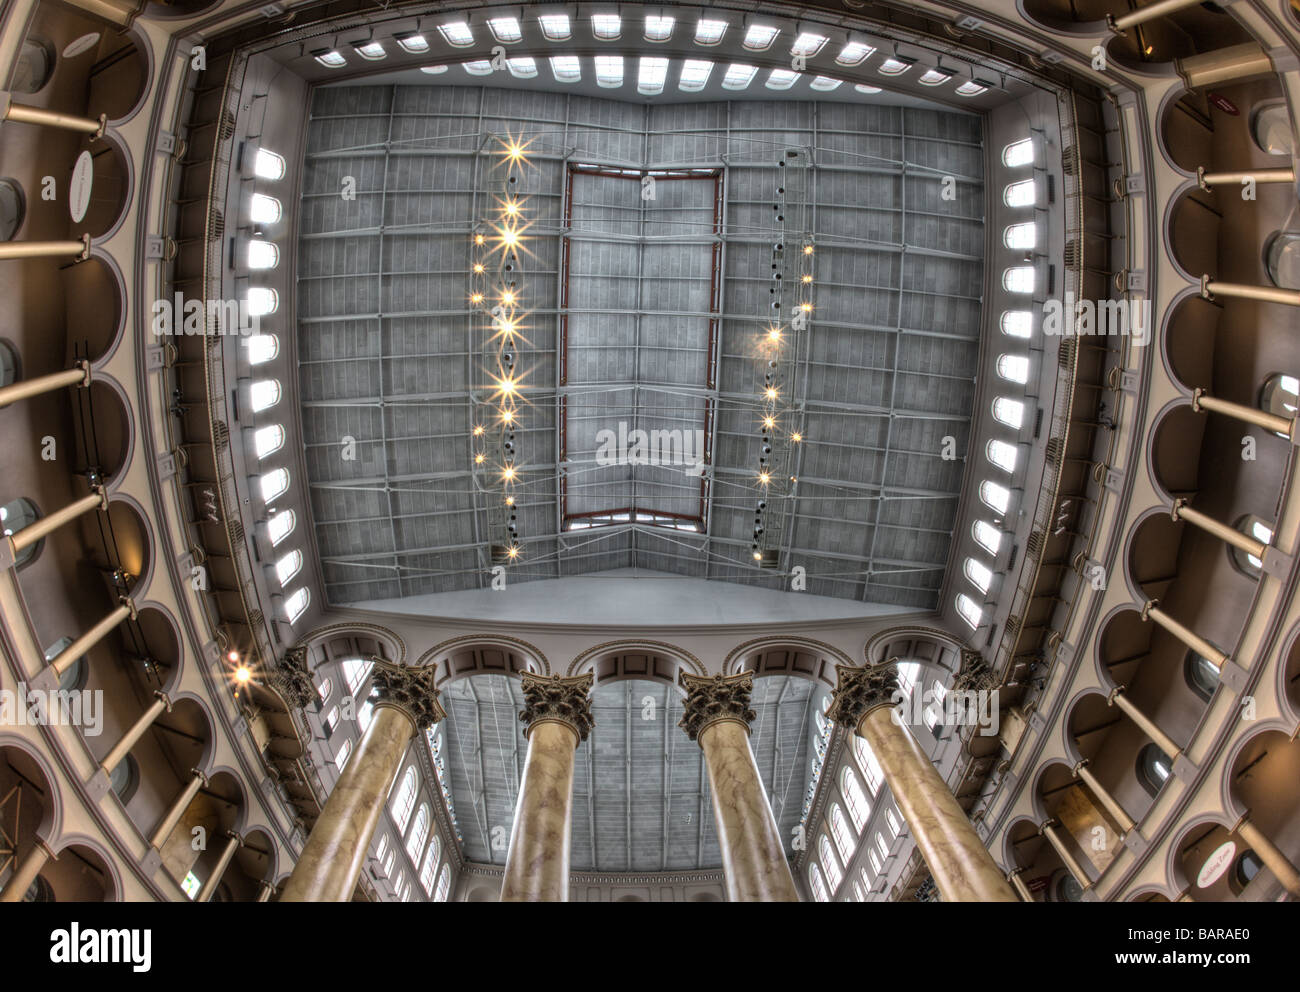 This is an HDR image of the ceiling of the National Building Museum in Washington, DC, a museum of architecture and design. Stock Photo